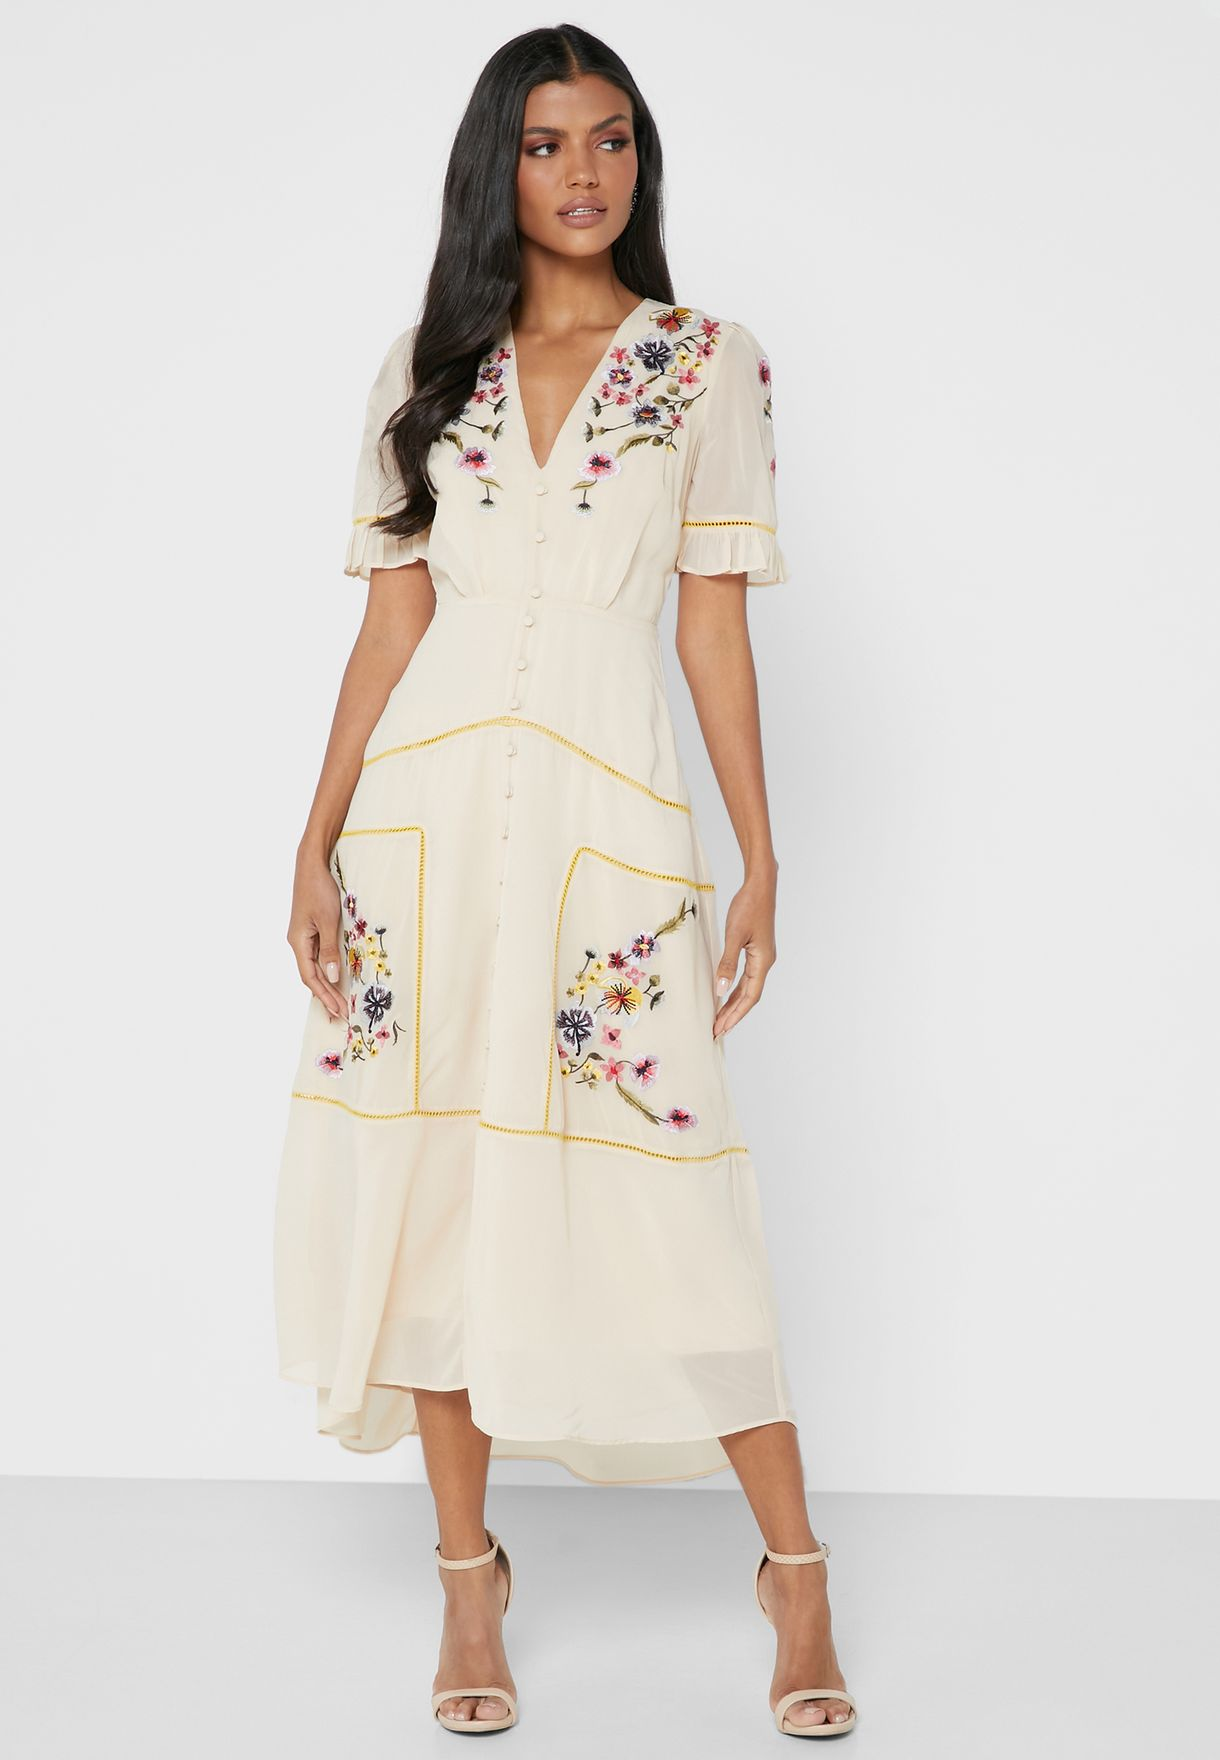 The Madeline Embroidered Dress